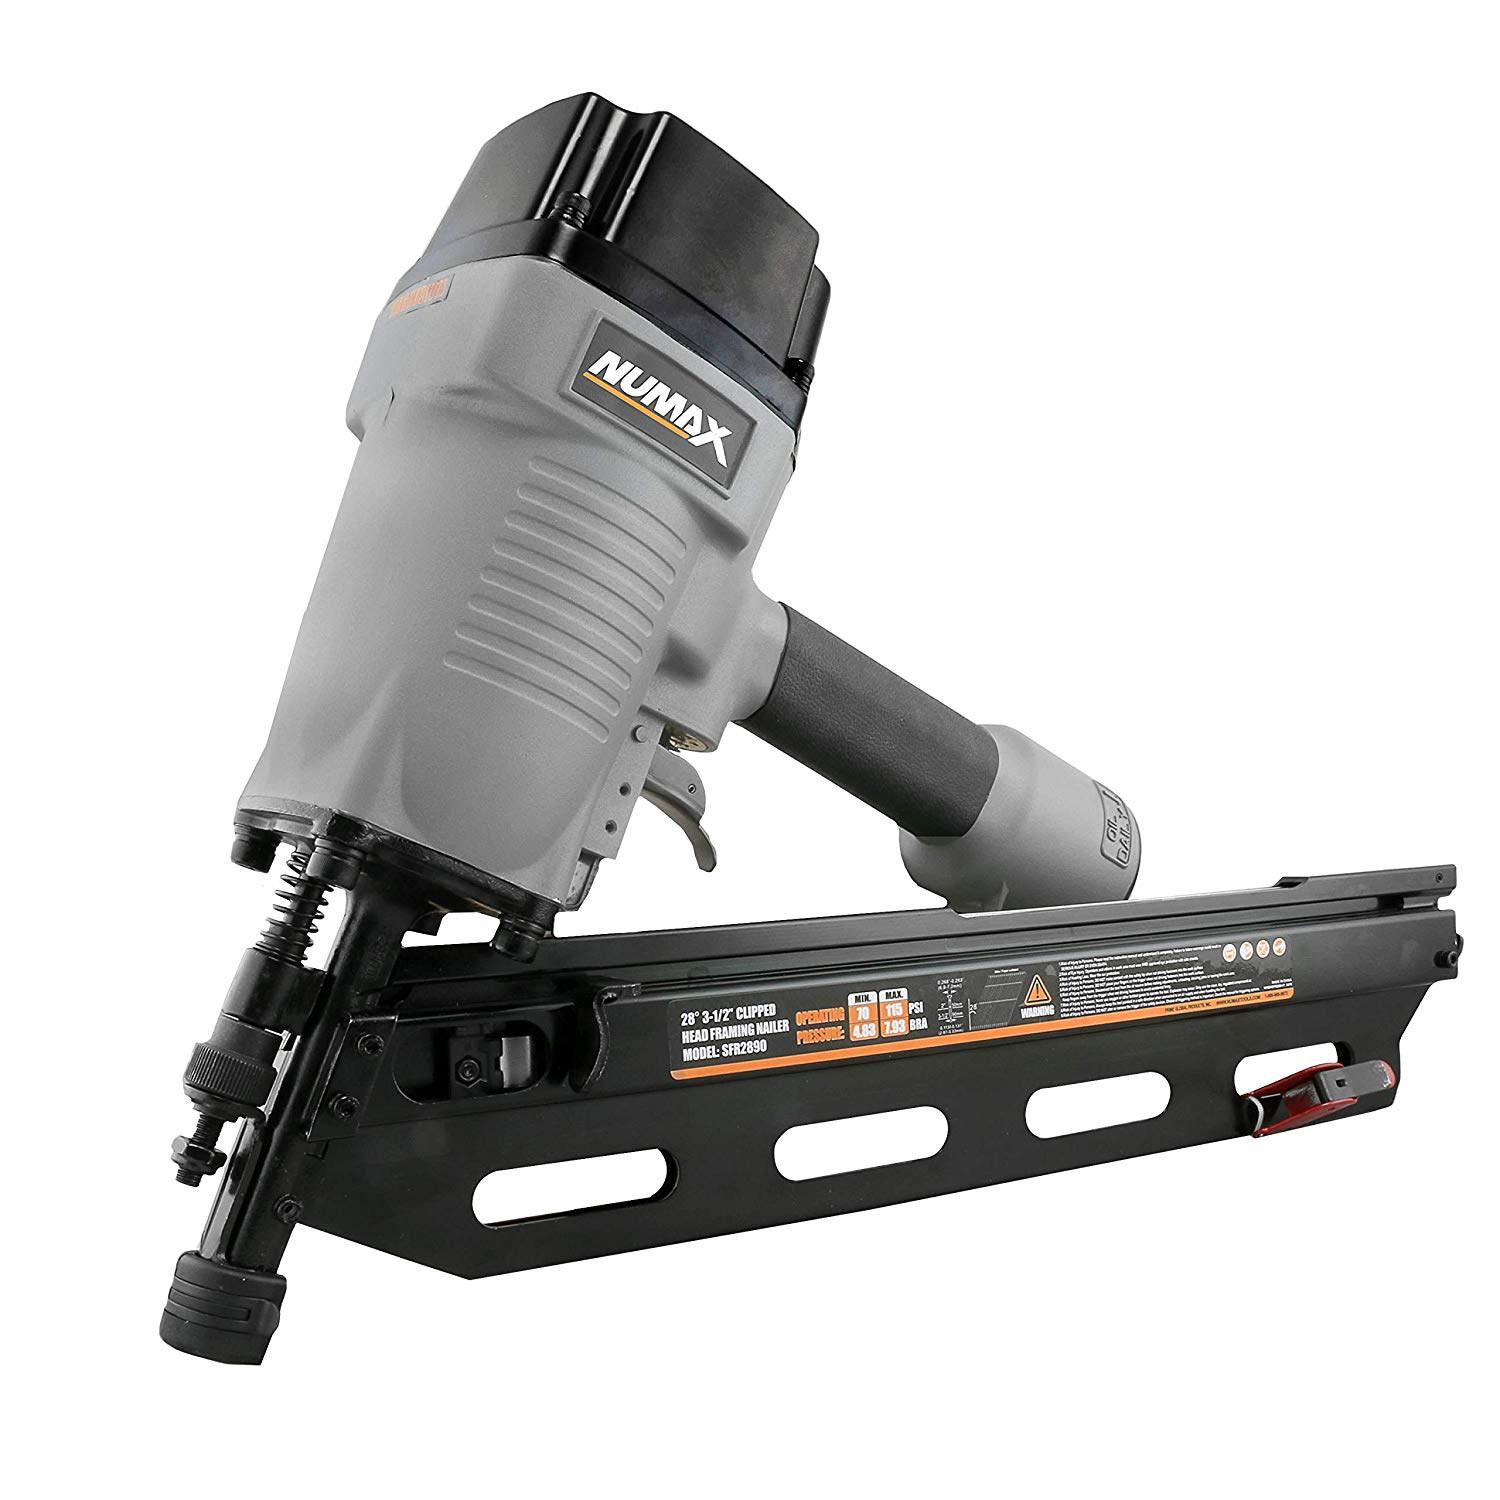 Pneumatic 34 Degree 3 1 2 Clipped Head Framing Nailer Numax